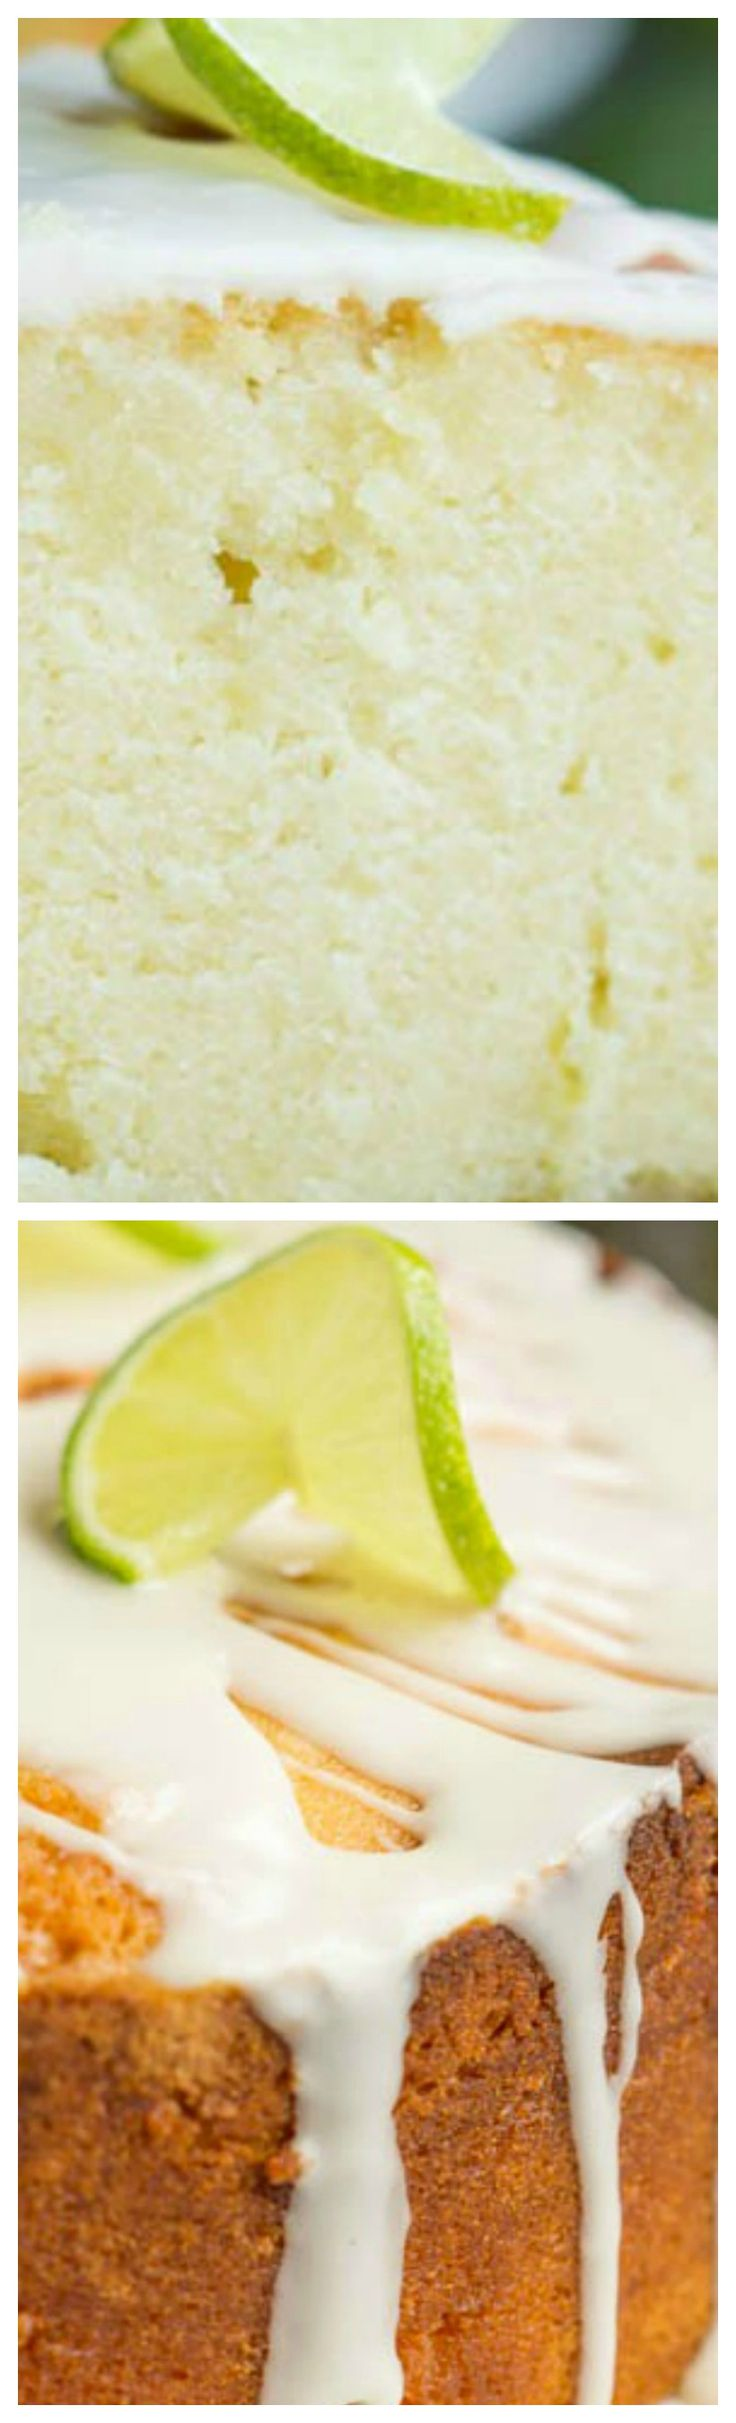 Scratch Made Key Lime Pound Cake with Key Lime Glaze ~ A bright and moist pound cake that is sure to please your palate. Full of flavor, this dessert is great for entertaining.